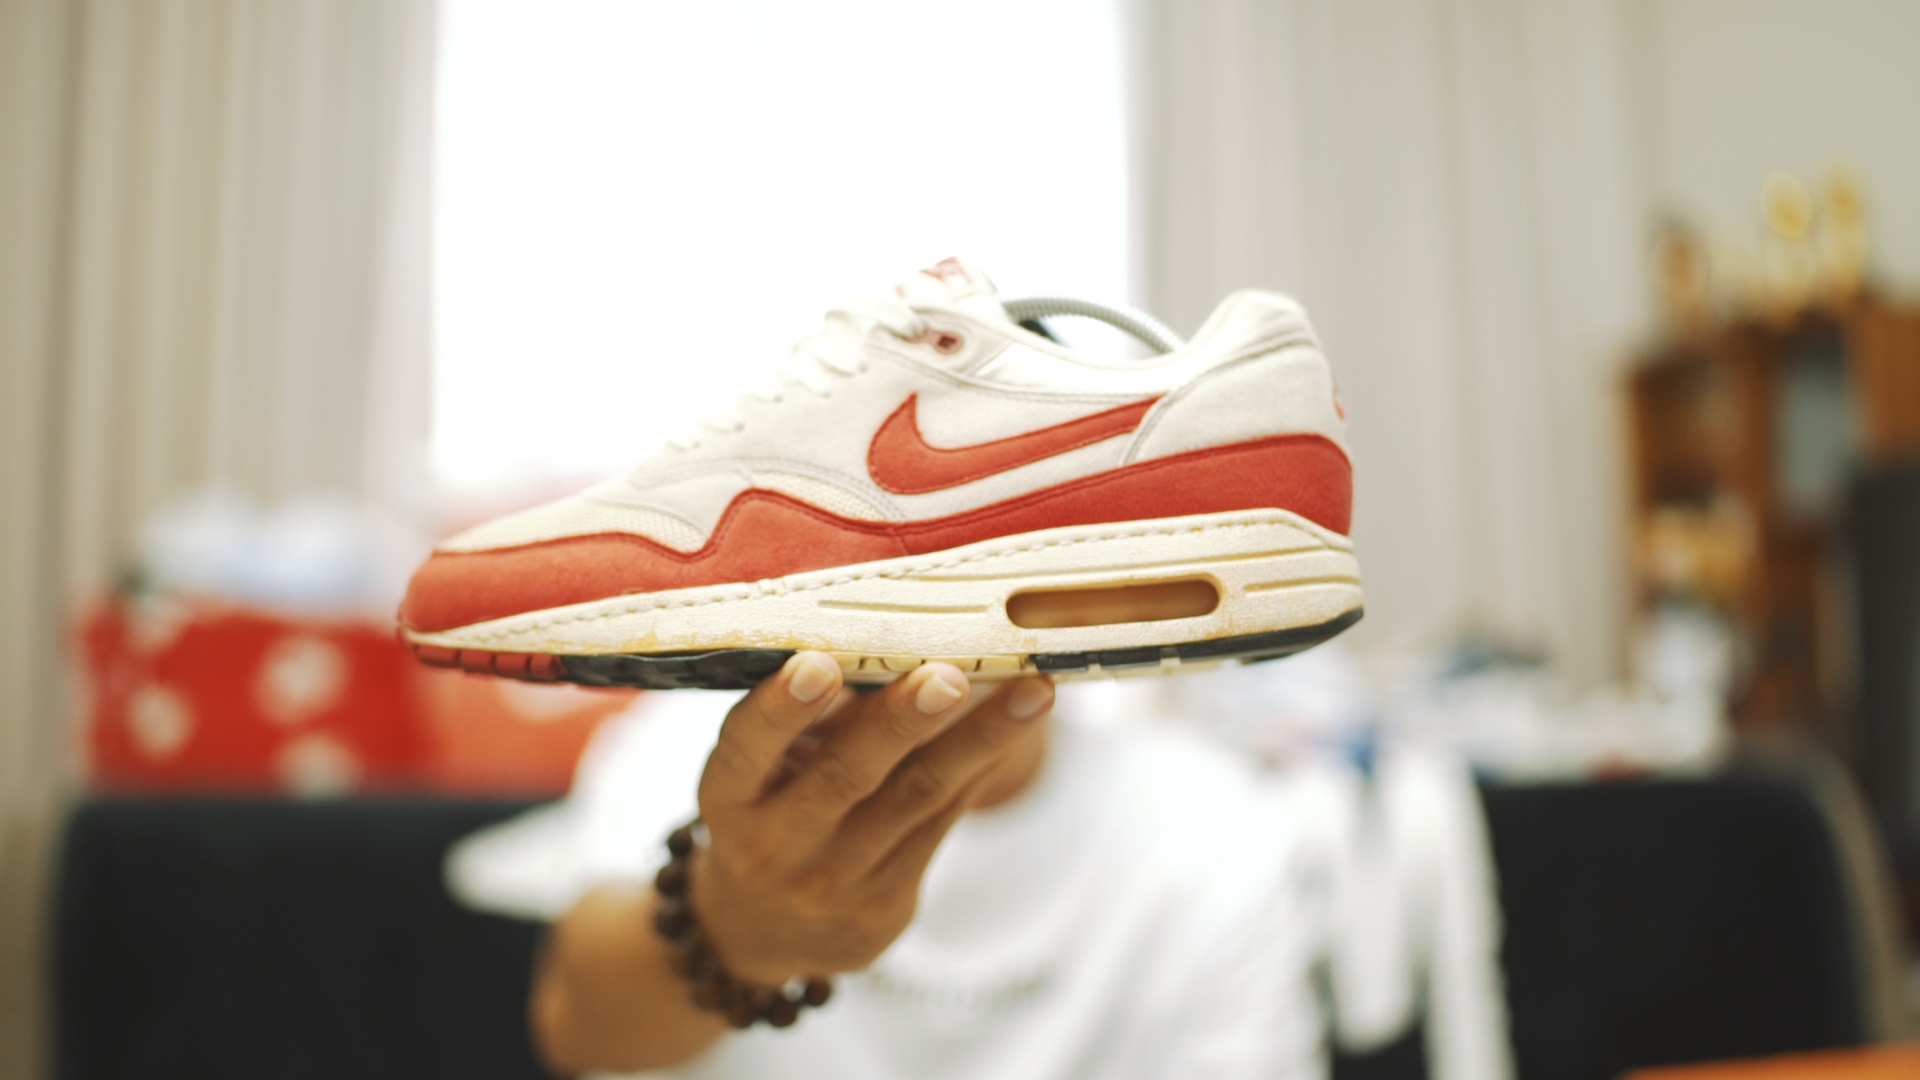 Saigon needs more air - elle man - Nam 2 - Air Max 1 OG